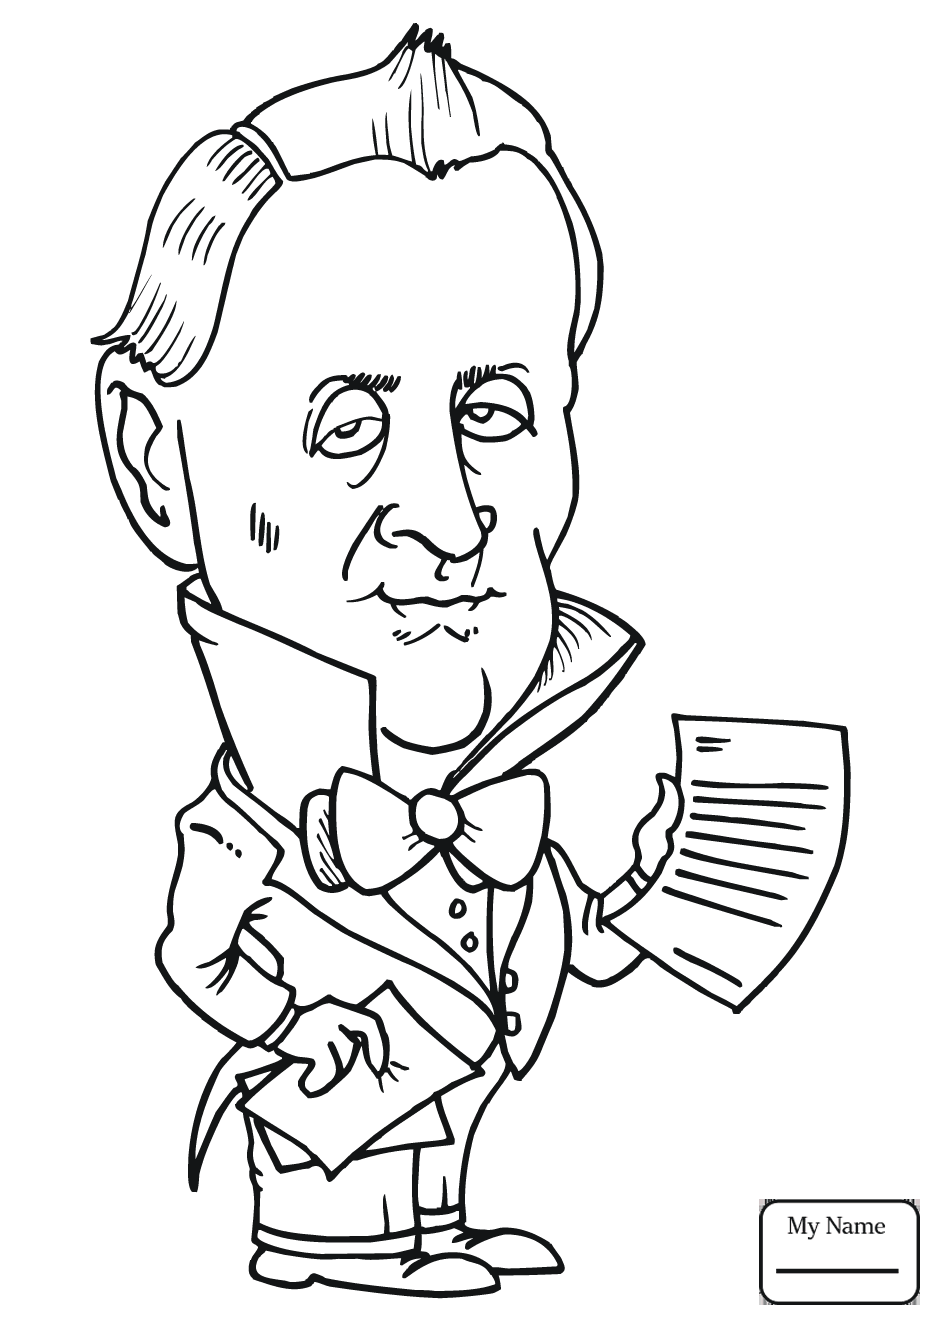 andrew jackson caricature andrew jackson drawing at getdrawings free download jackson andrew caricature